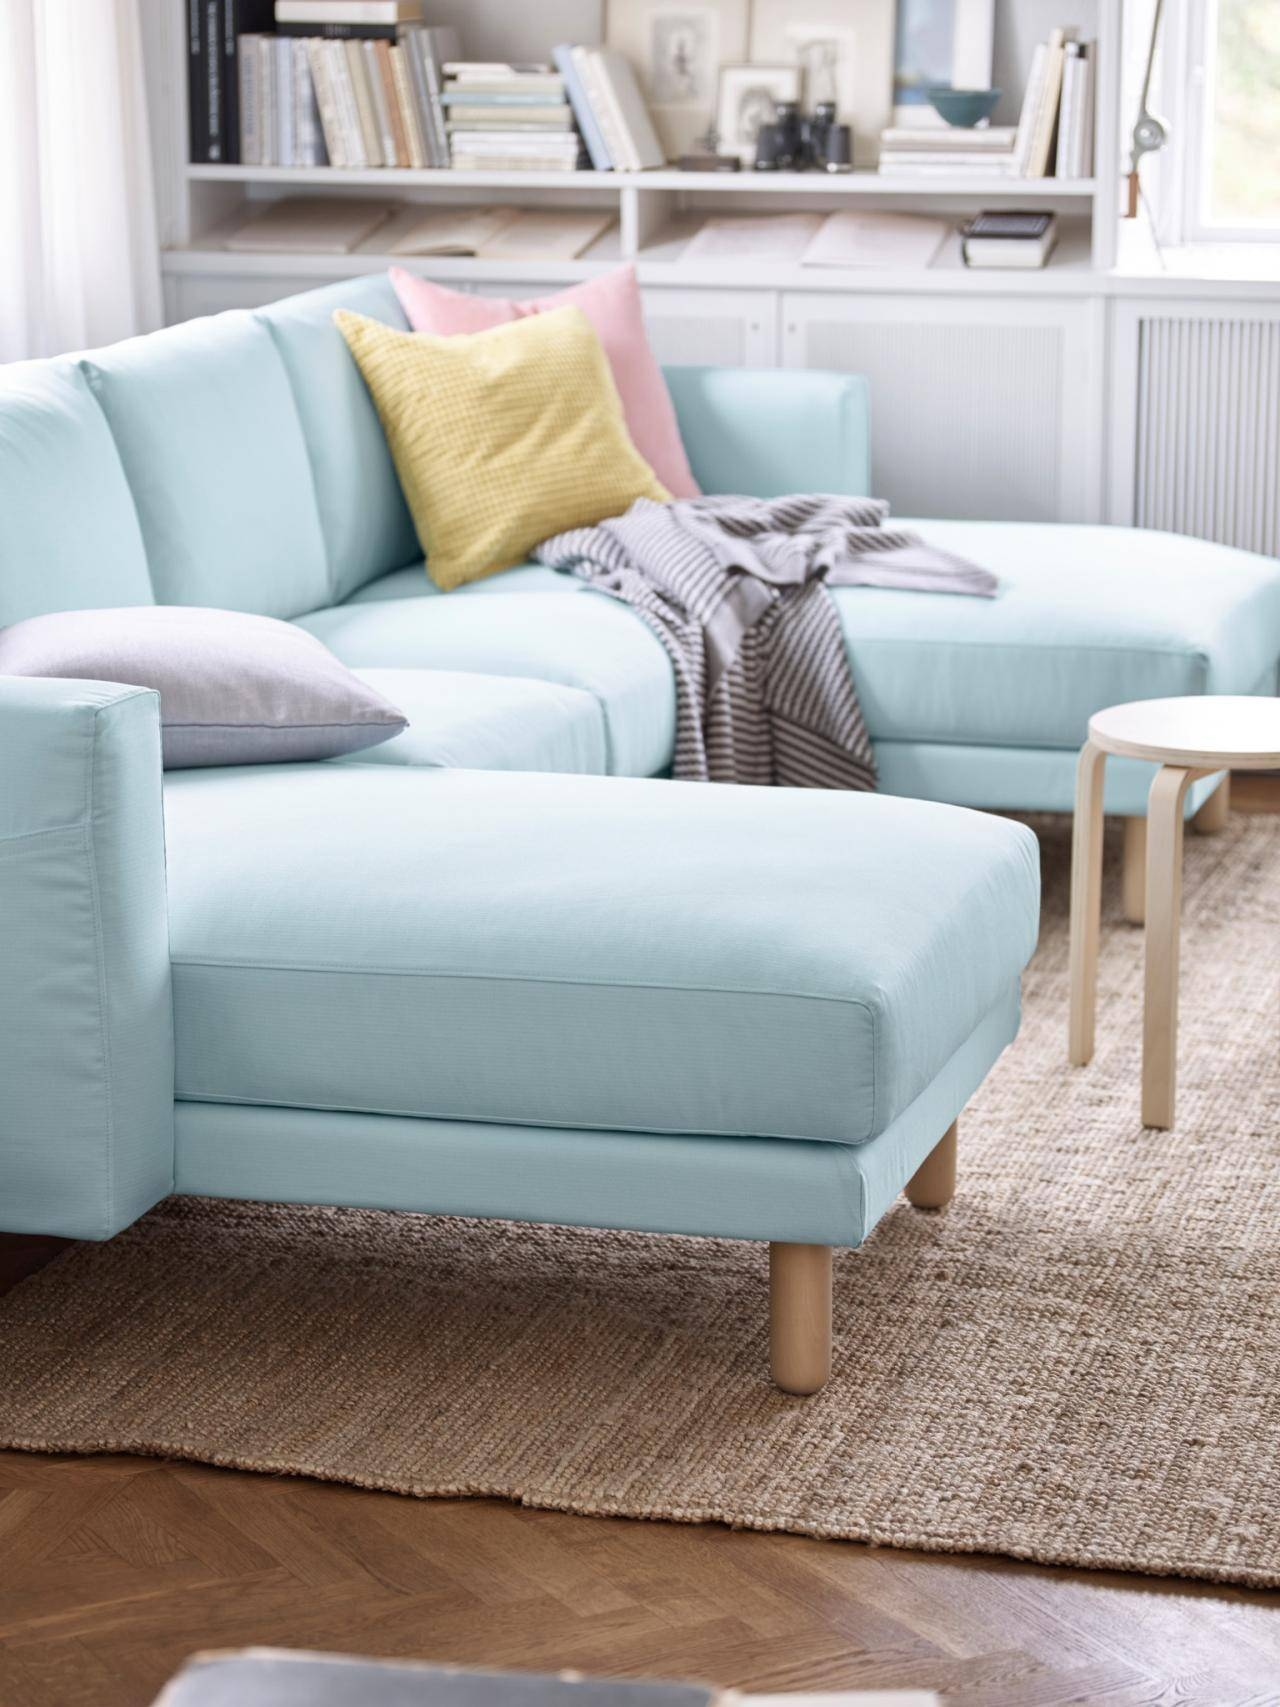 5 Apartment Sized Sofas That Are Lifesavers | Hgtv's Decorating pertaining to 6 Foot Sofas (Image 2 of 30)